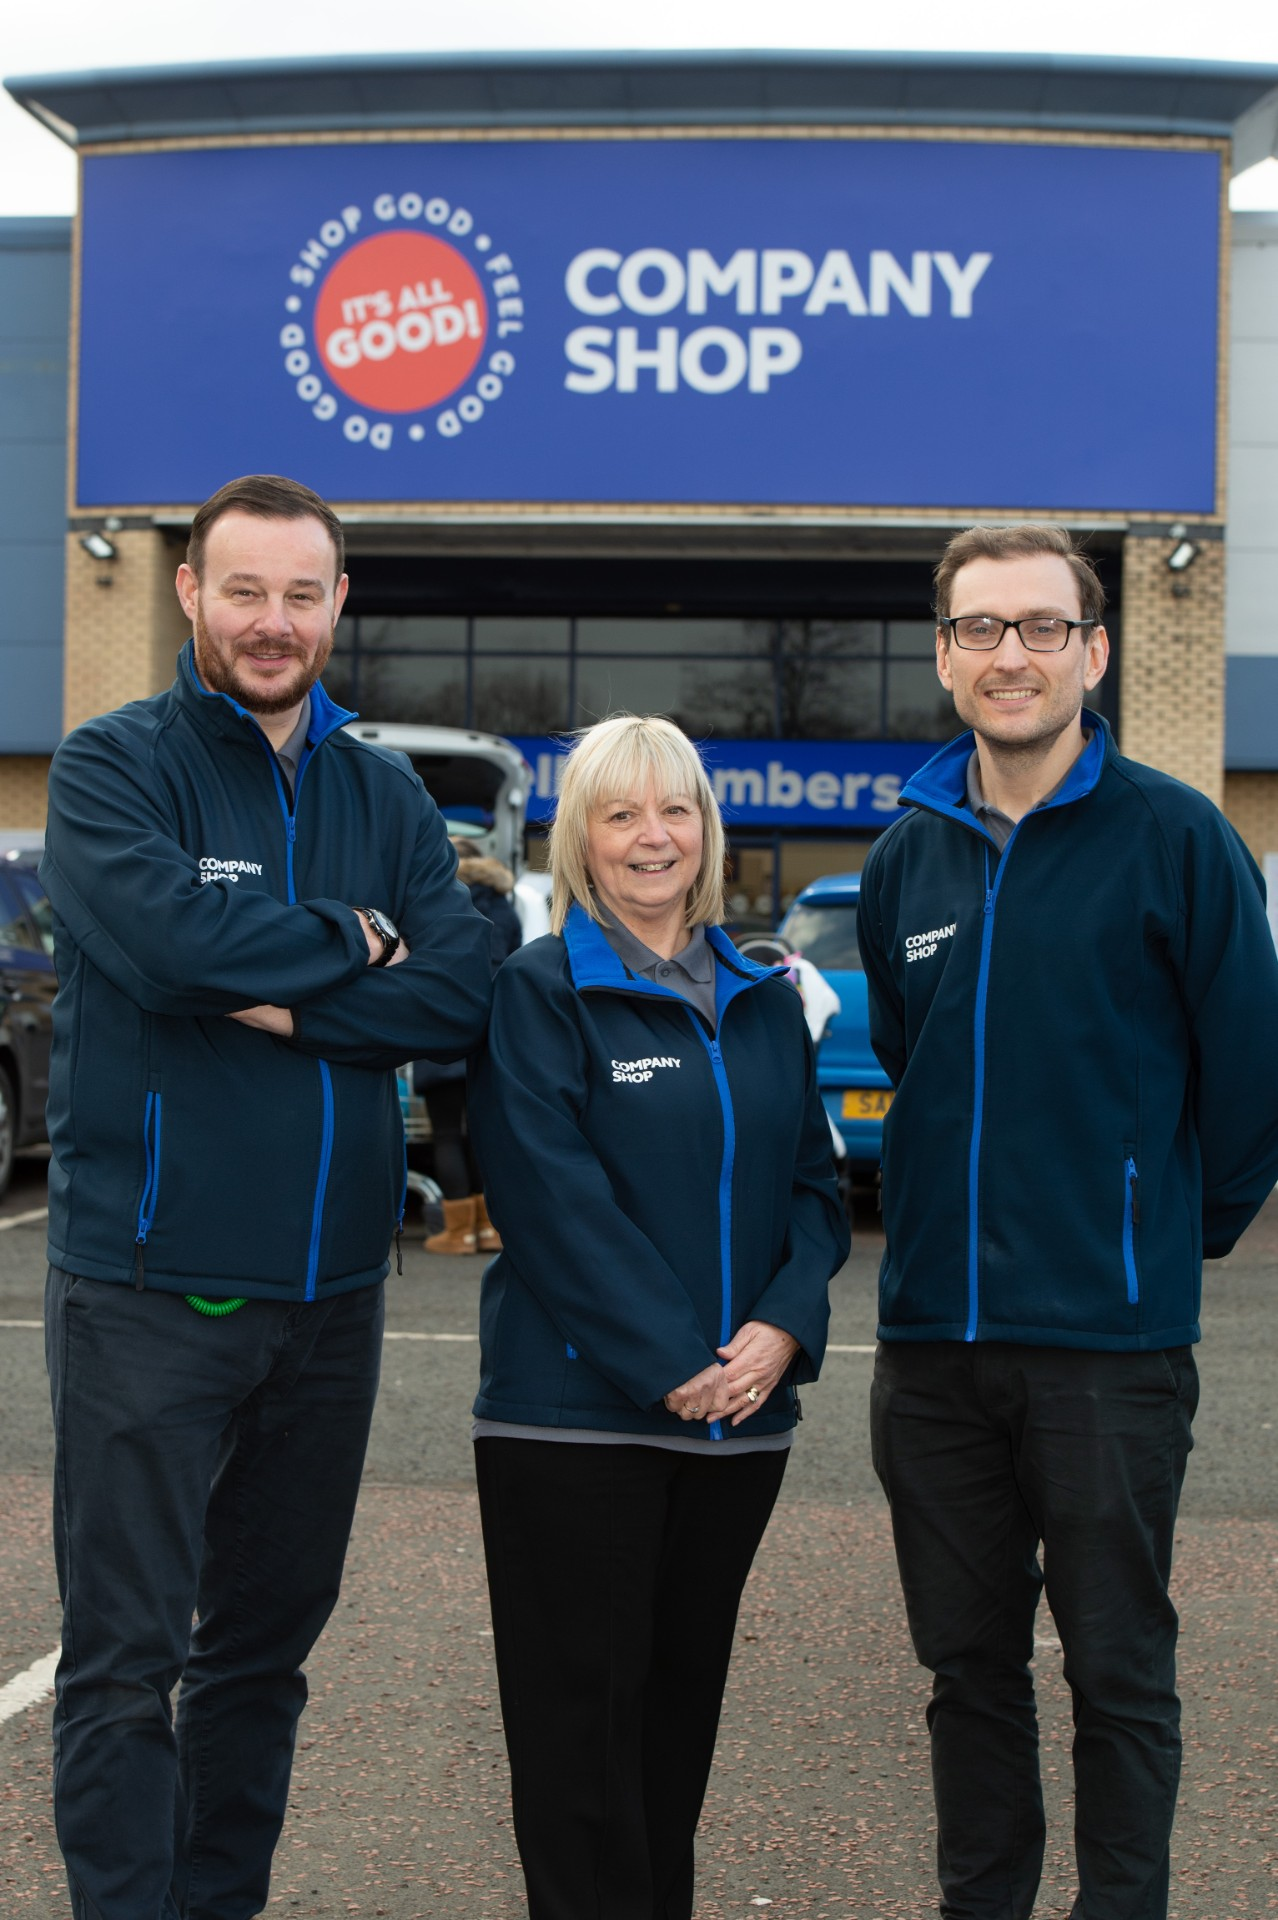 Company Shop staff - Paul Gallagher-Janette OBrien-Jamie Kilpatrick